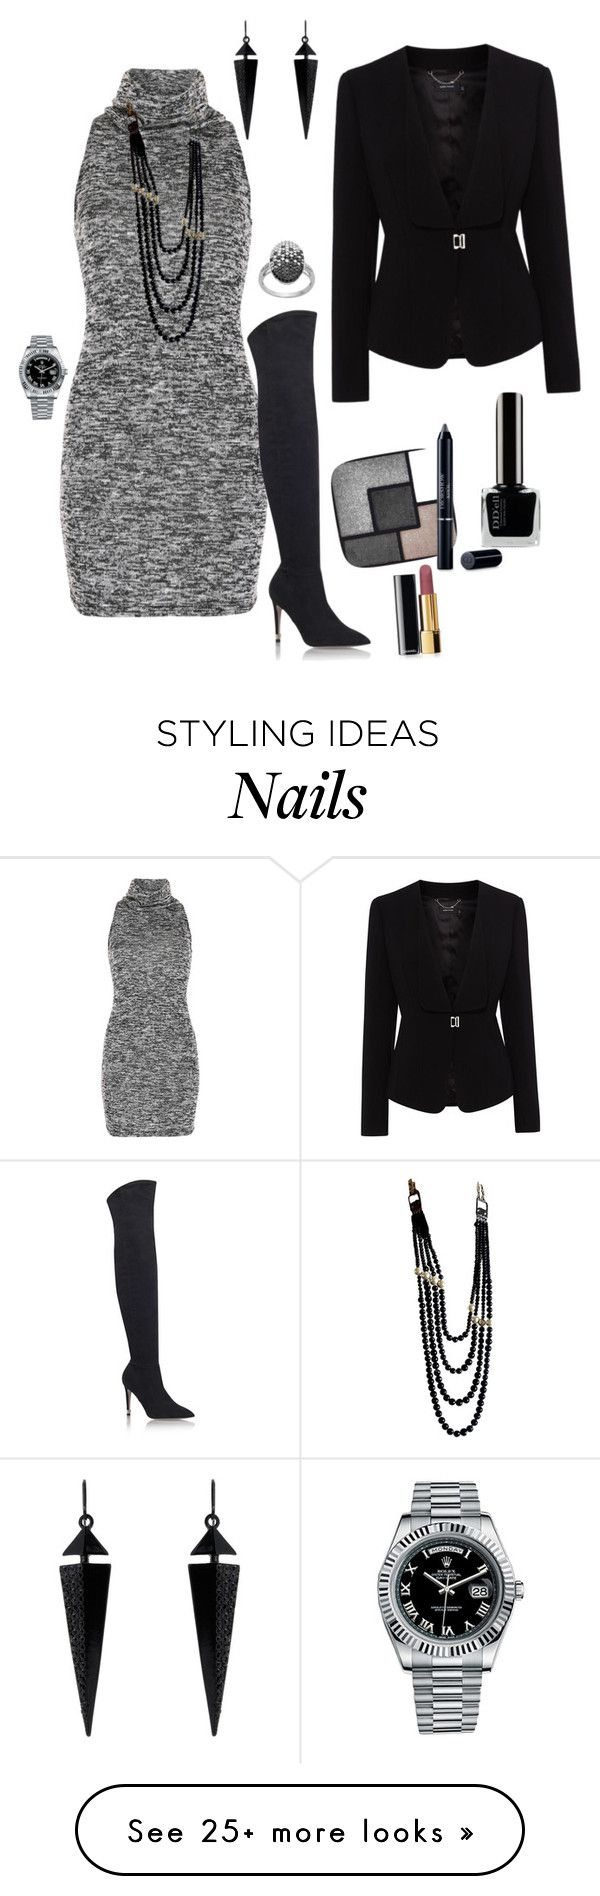 """Untitled #1526"" by greenrain on Polyvore featuring Voulez Vous, Miss KG, Oasis, Chanel, Rolex, Karen Millen, Yves Saint Laurent and Christian Dior"